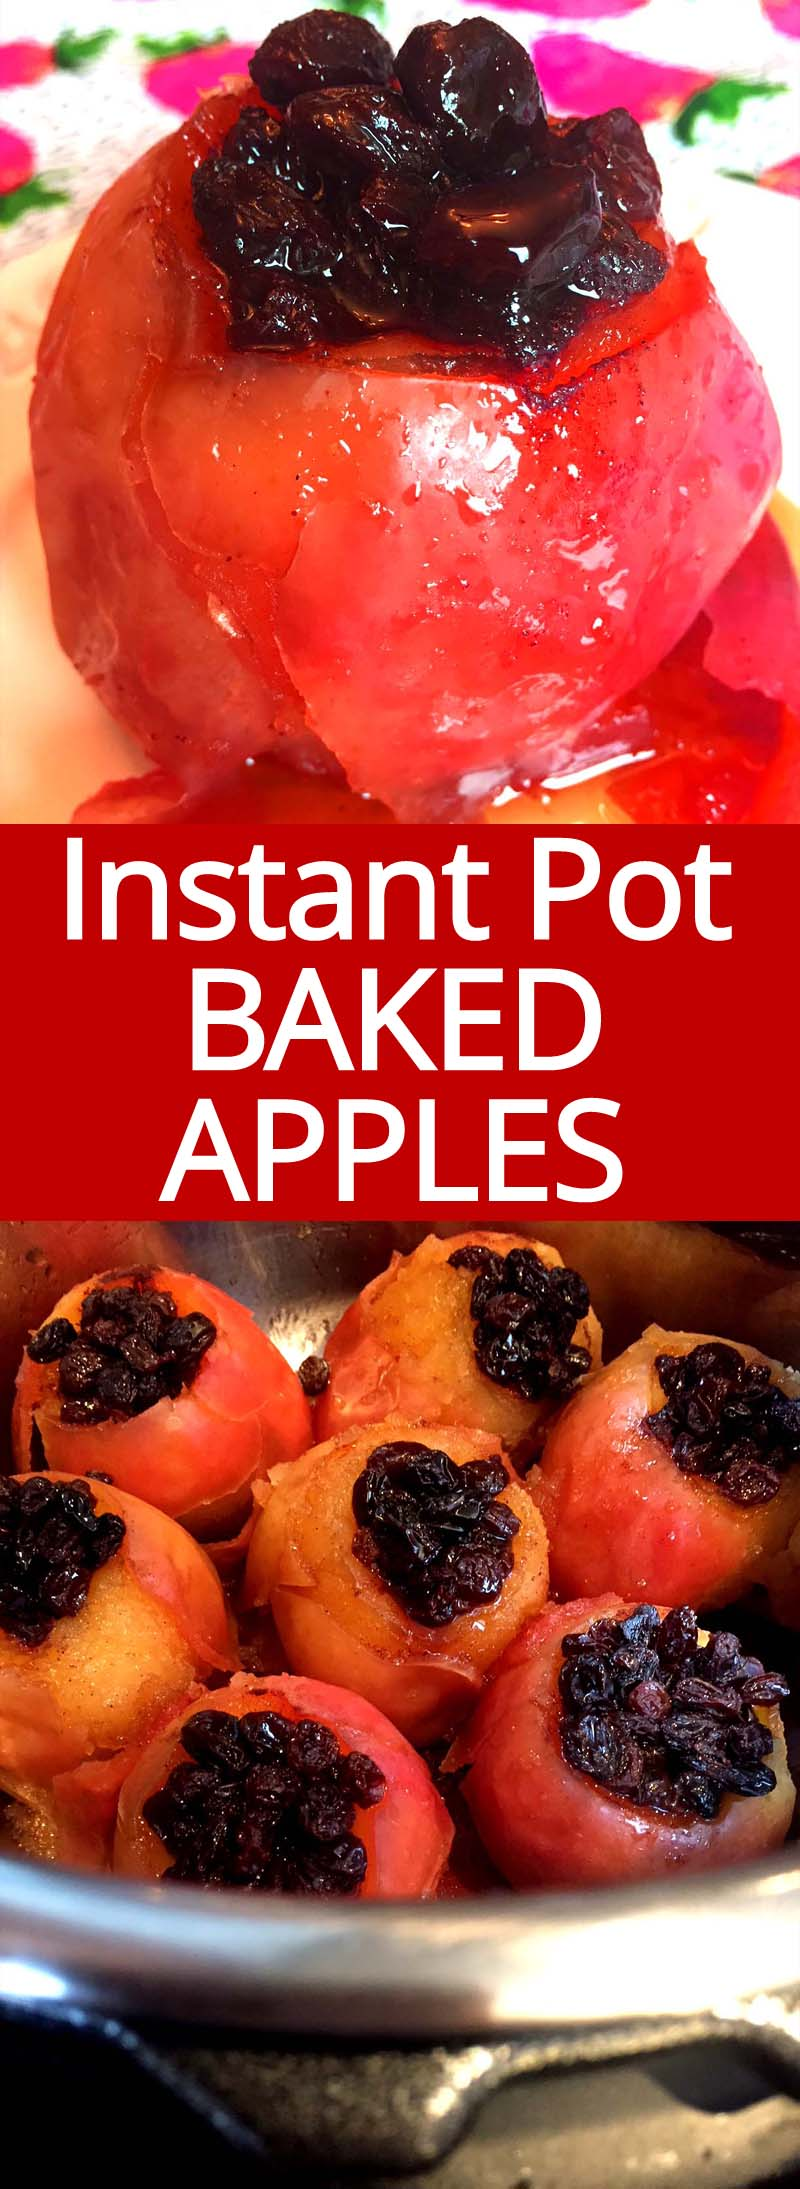 OMG these Instant Pot baked apples are amazing! So easy to make, healthy and yummy! I love my Instapot!